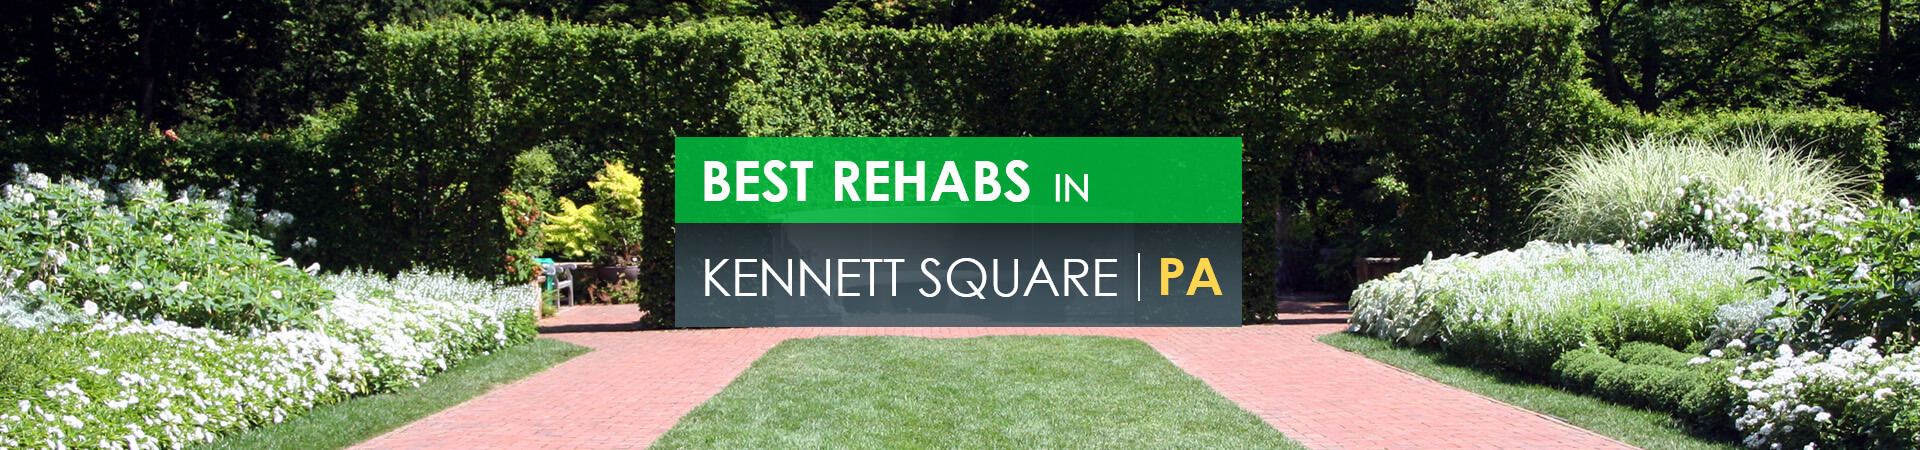 Best rehabs in Kennett Square, PA